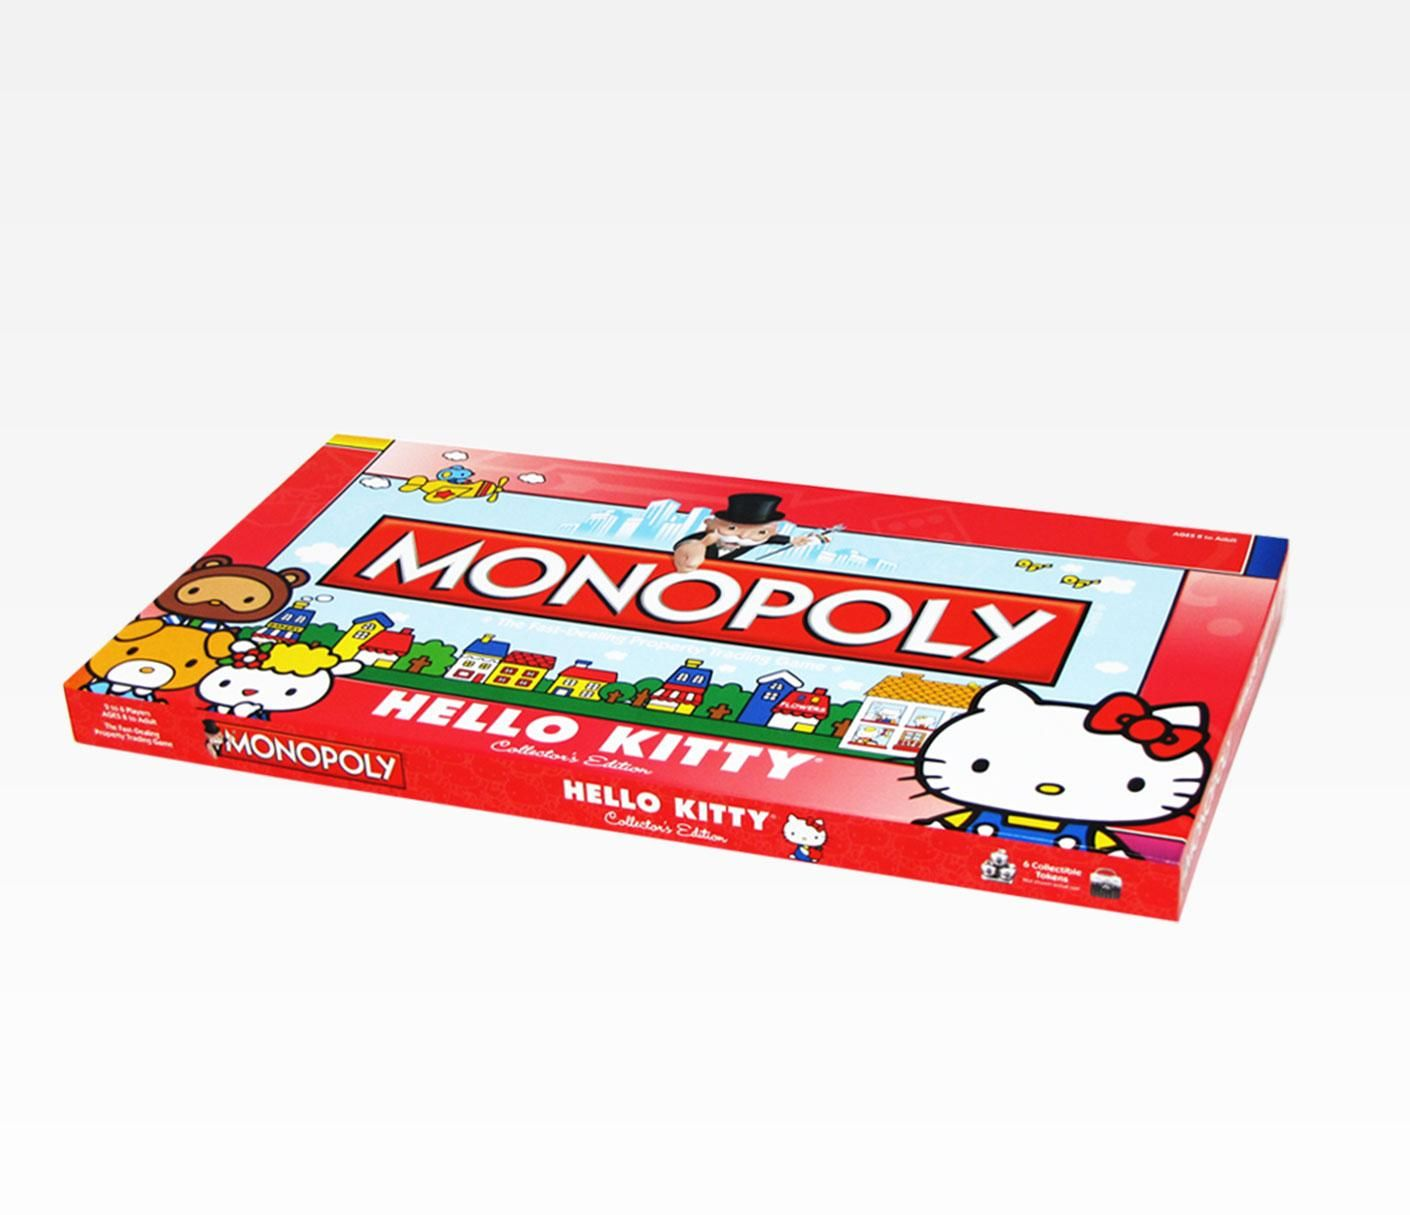 Hello Kitty Collector's Edition Monopoly Board Game